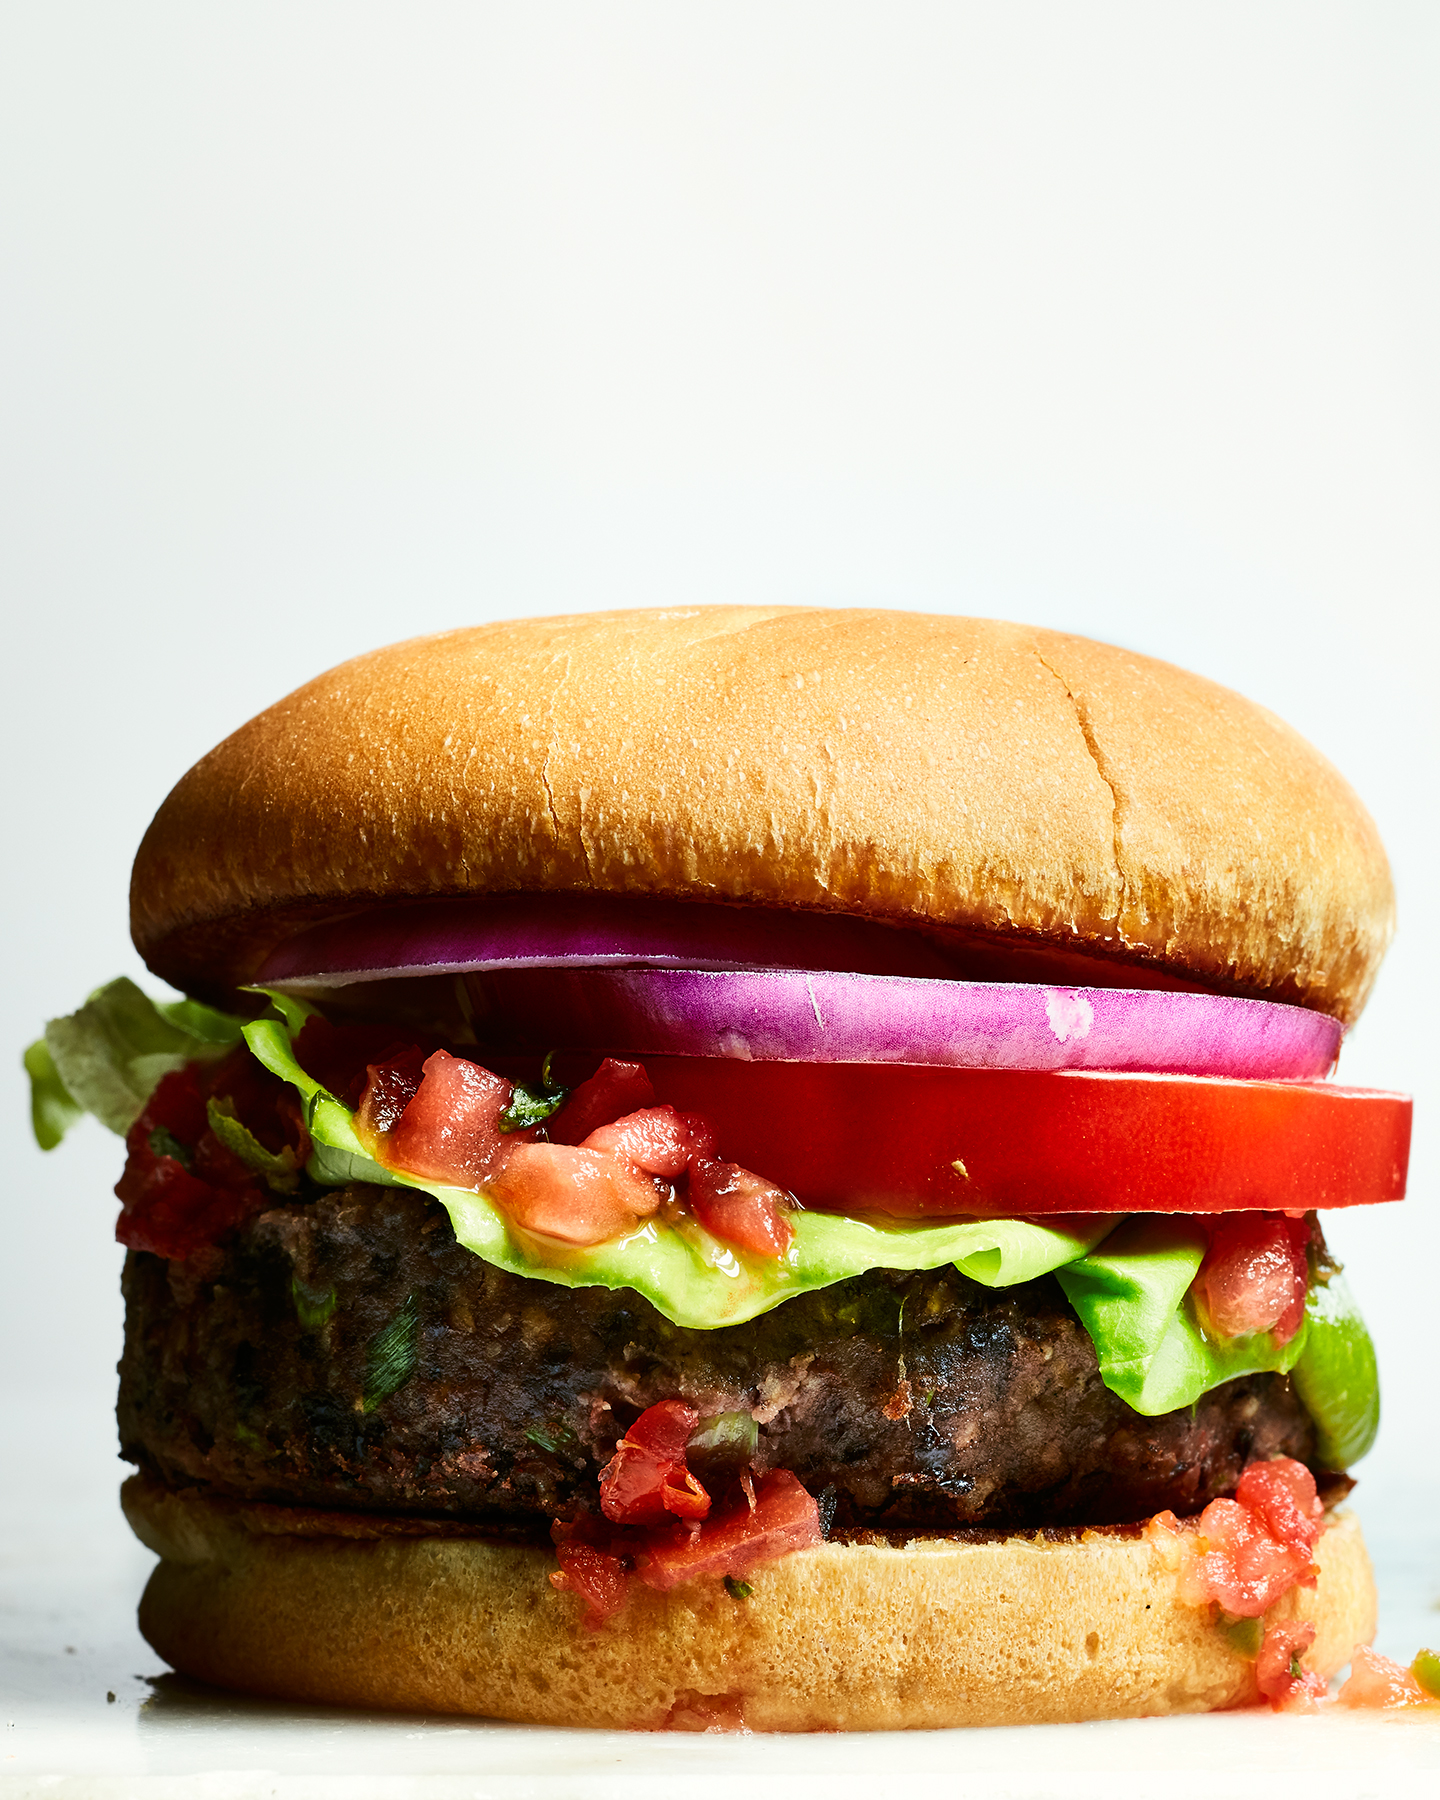 You Should Really Consider Adding Oats to Your Burgers and Shakes (Seriously!)